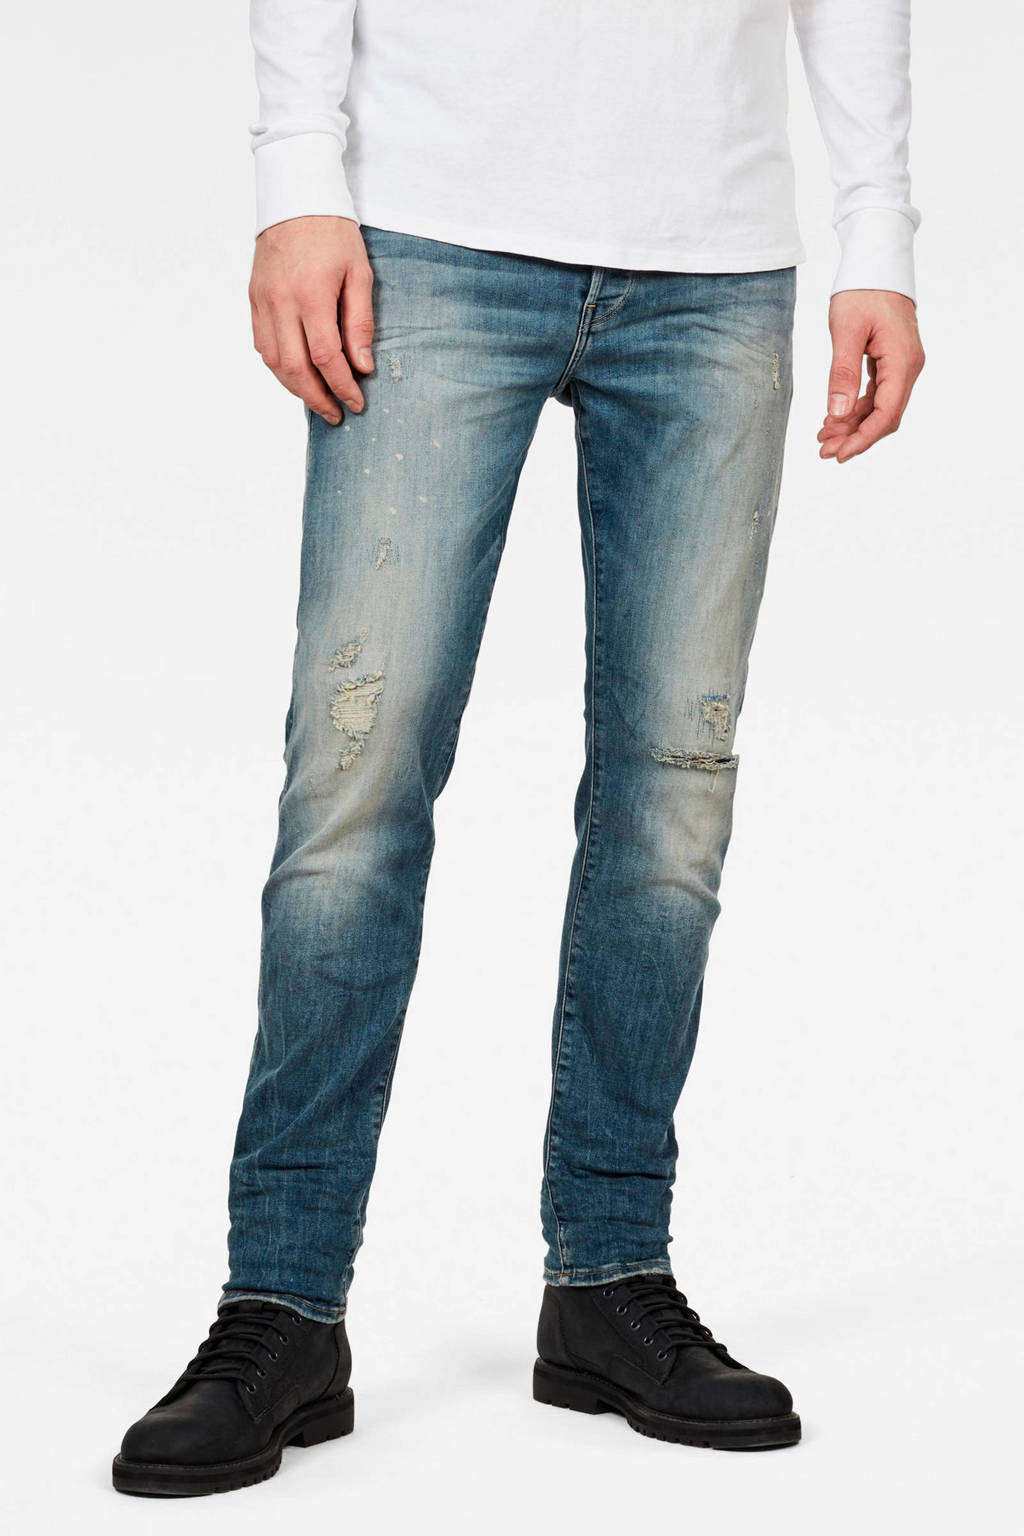 G-Star RAW slim fit jeans 3301 antic faded ripped marine, A936 antic faded ripped marine